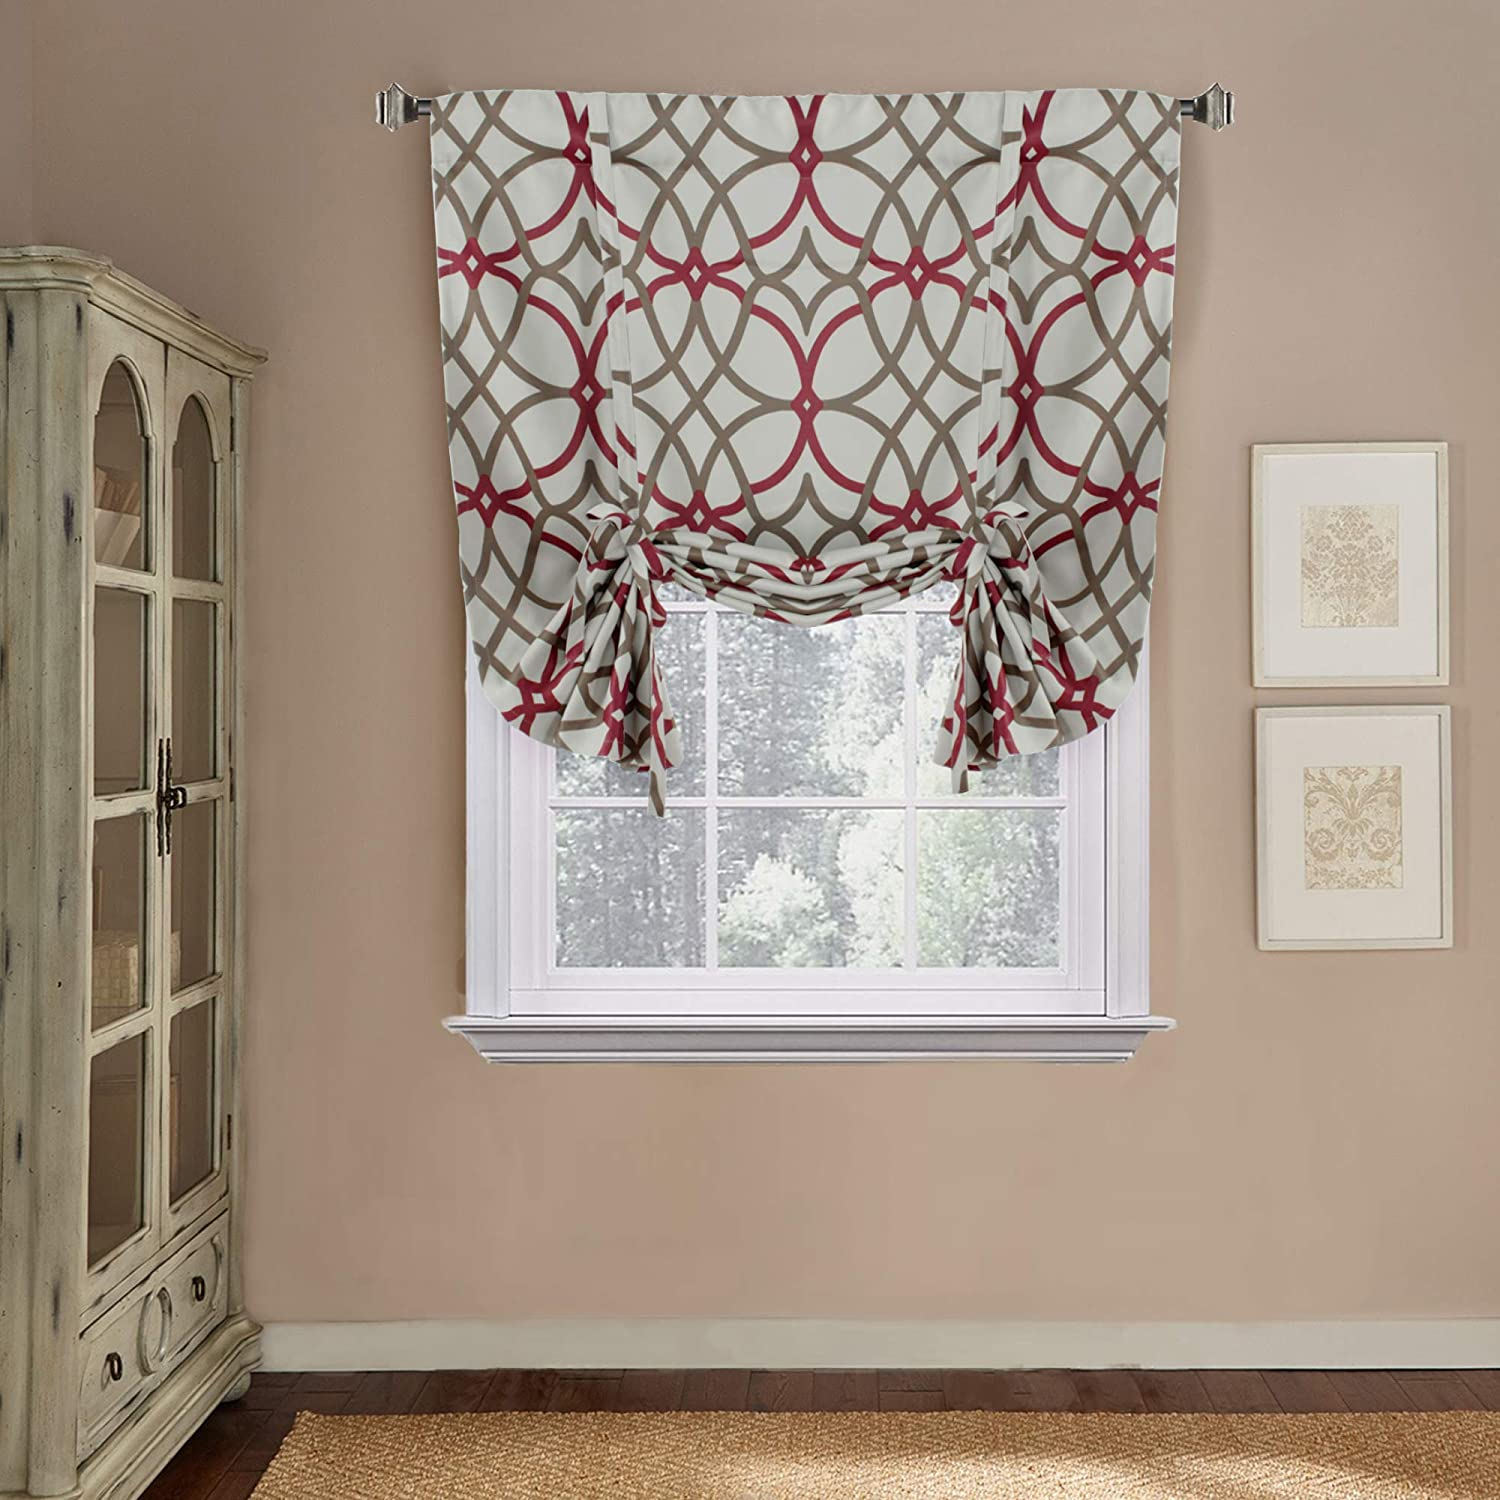 """H.VERSAILTEX Thermal Insulated Blackout Adjustable Tie Up Shade Rod Pocket Curtain for Small Window-42 Wide by 63"""" Long-Taupe and Red Geo Pattern(1 Panel)"""